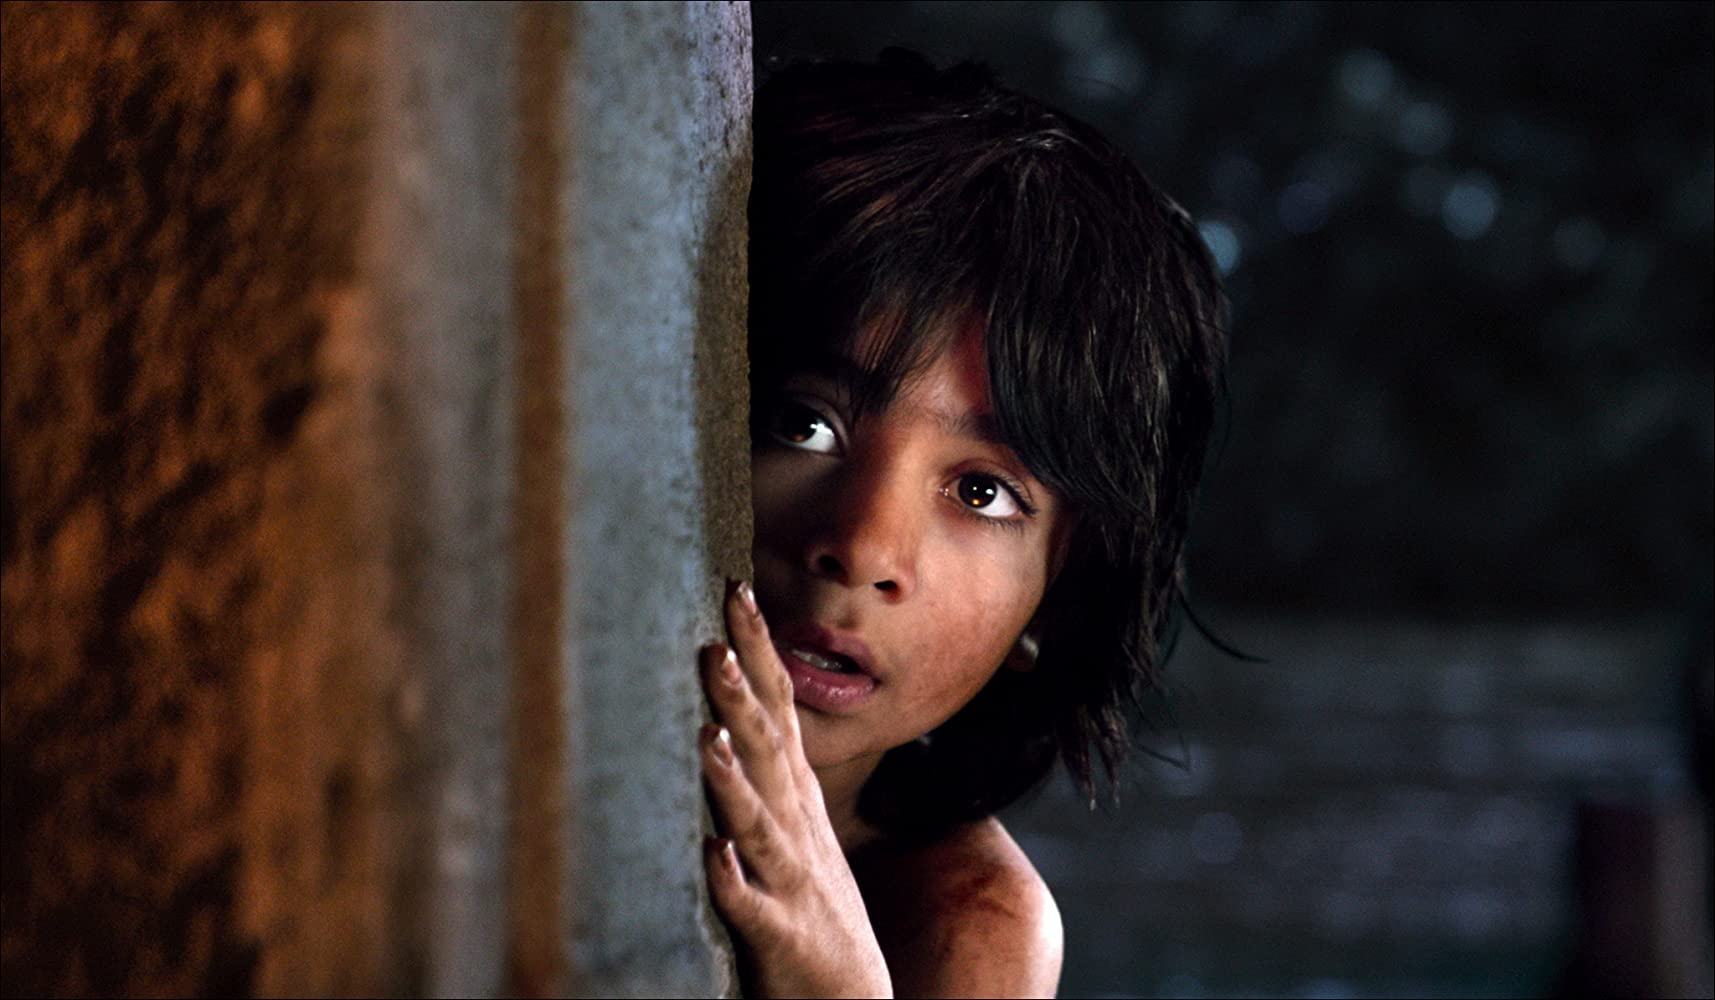 Neel Sethi in The Jungle Book (2016)